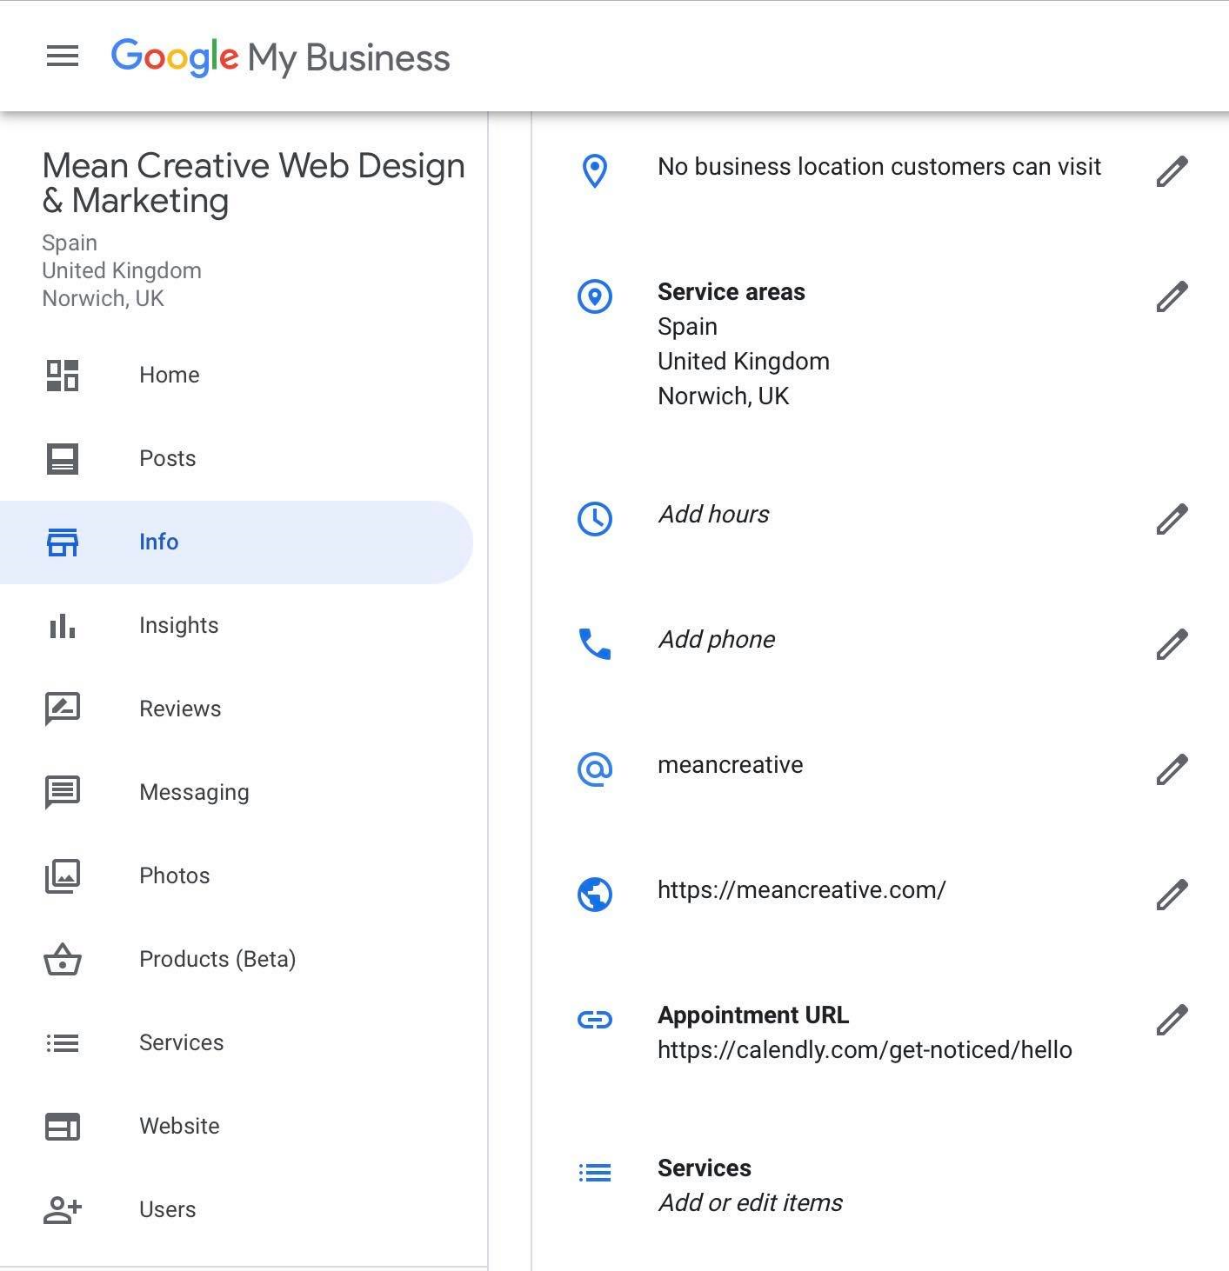 Adding information and opening hours on Google My Business